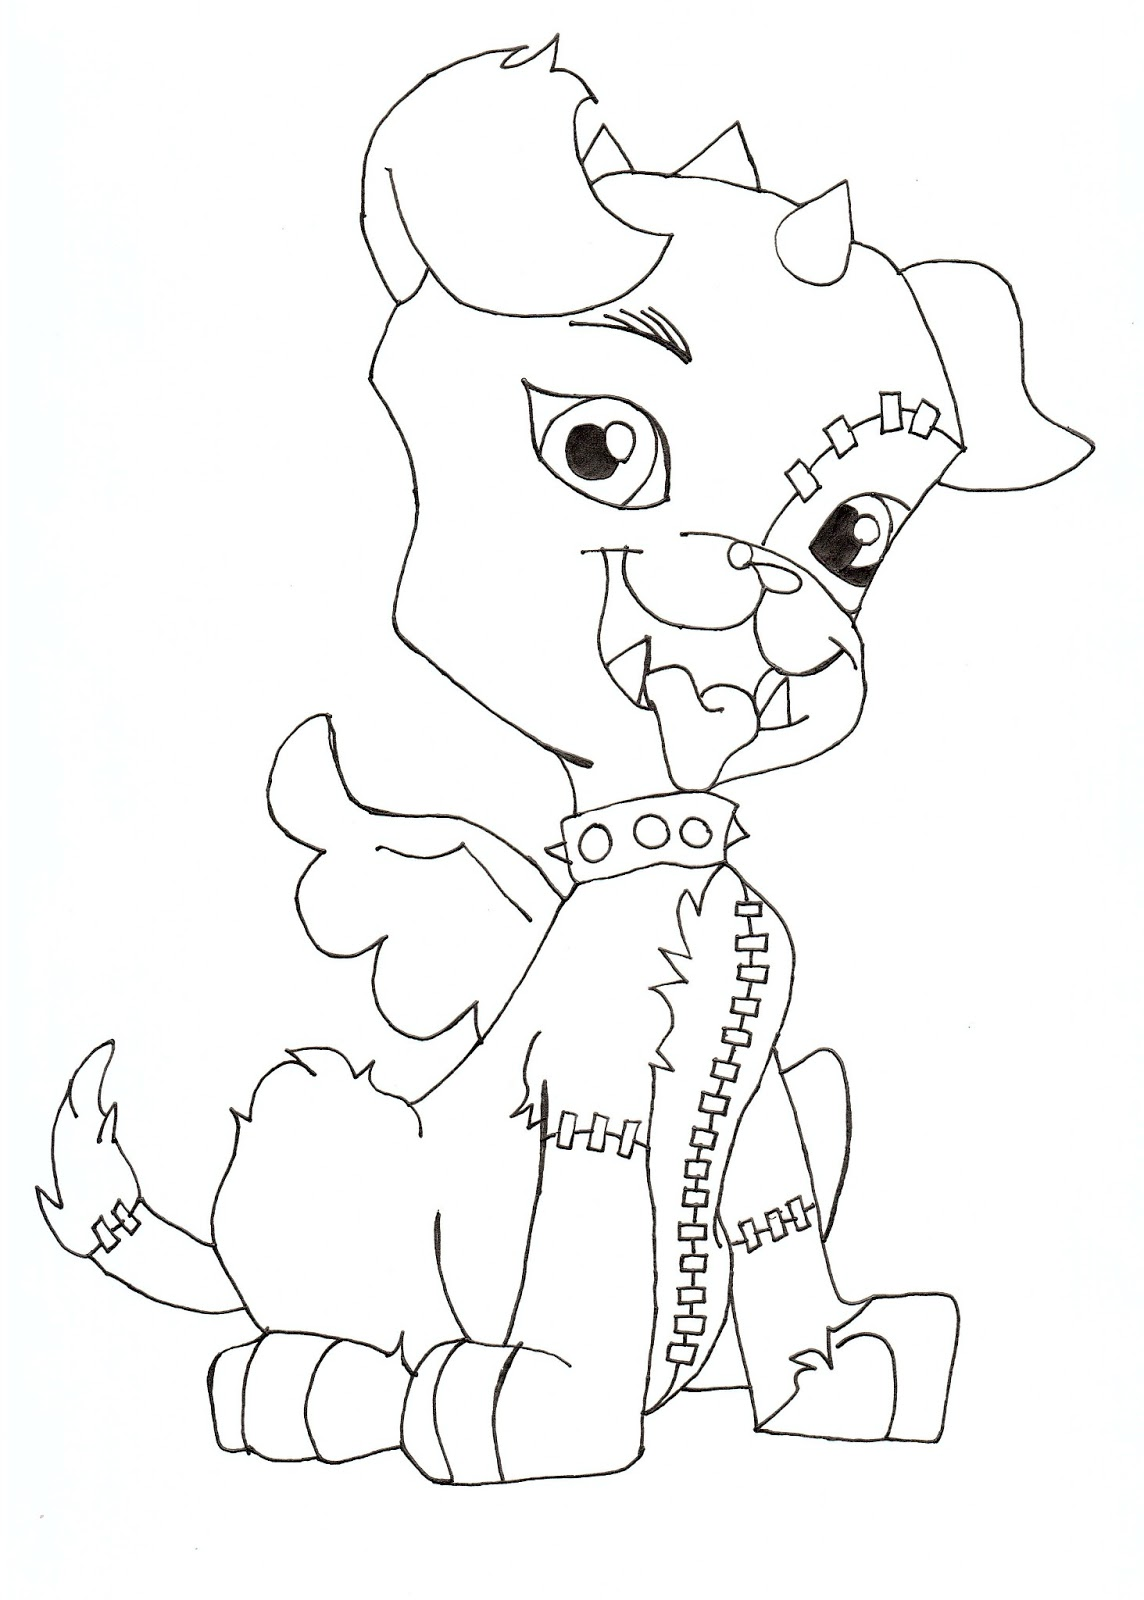 Universal image regarding free printable monster high coloring pages